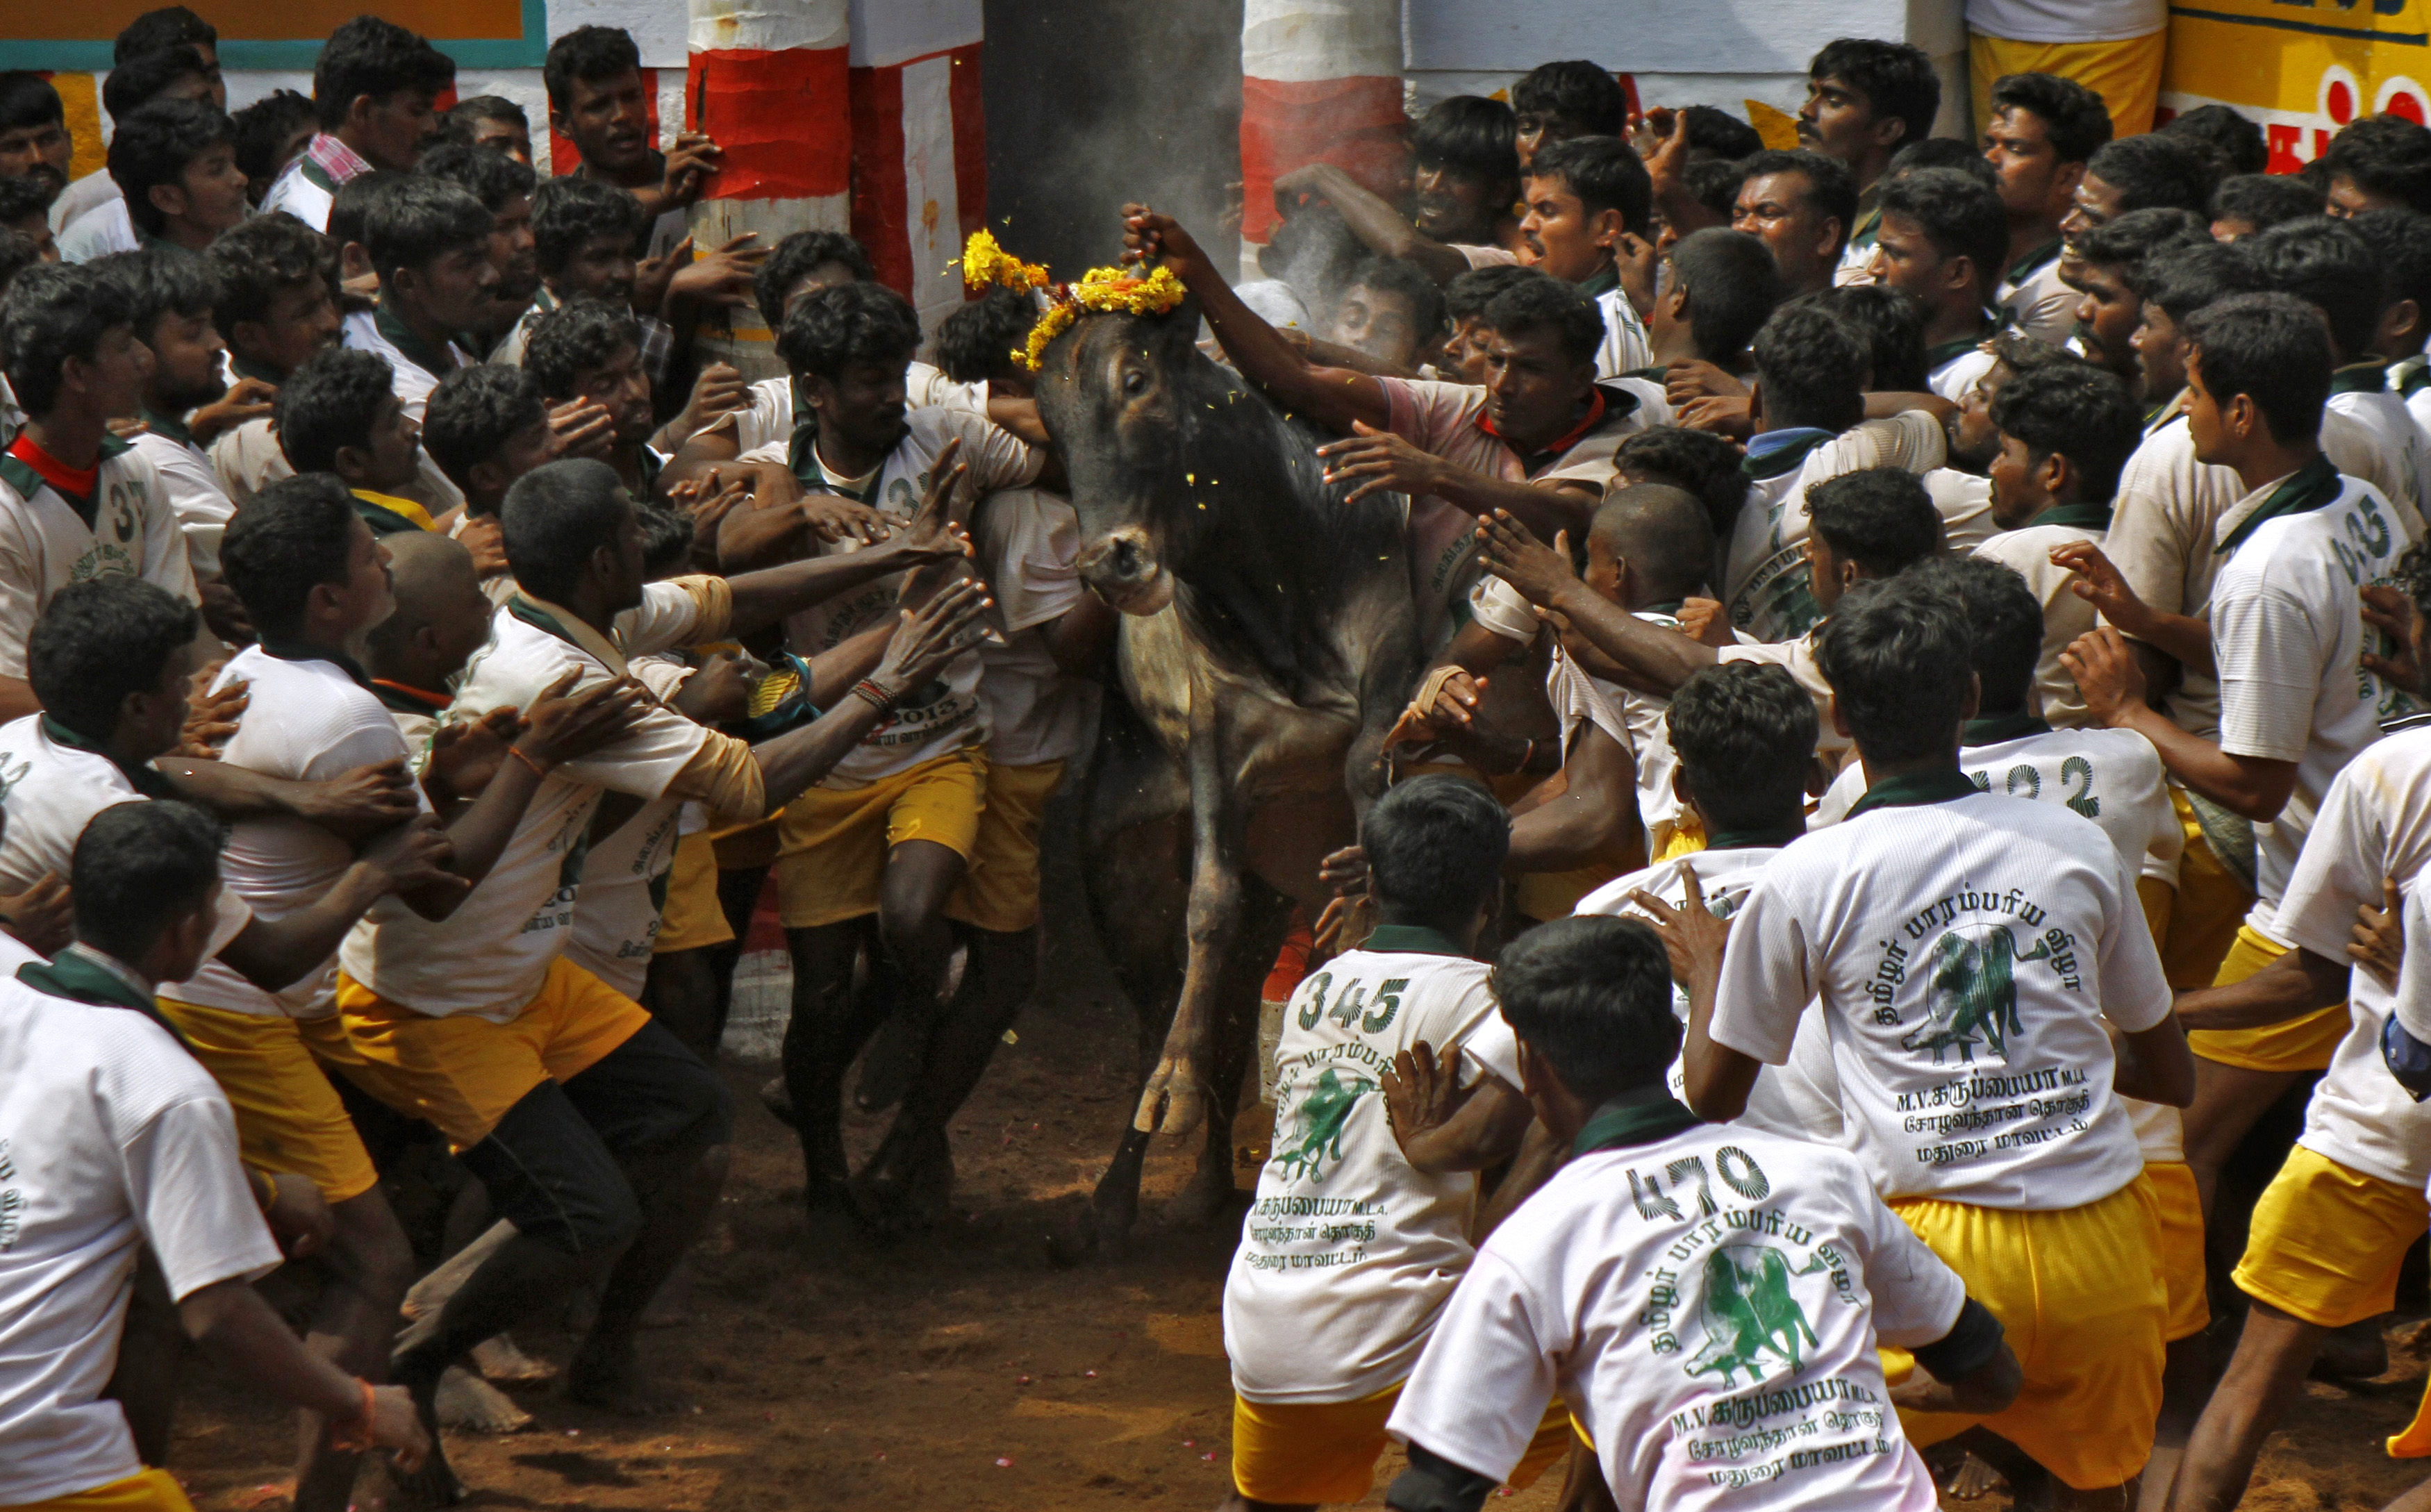 Villagers try to control a bull during a bull-taming festival on the outskirts of Madurai town, about 500 km (310 miles) from the southern Indian city of Chennai January 16, 2013. The annual festival is part of south India's harvest festival of Pongal. REUTERS/Babu (INDIA - Tags: RELIGION ANNIVERSARY ANIMALS TPX IMAGES OF THE DAY) - RTR3CIYB